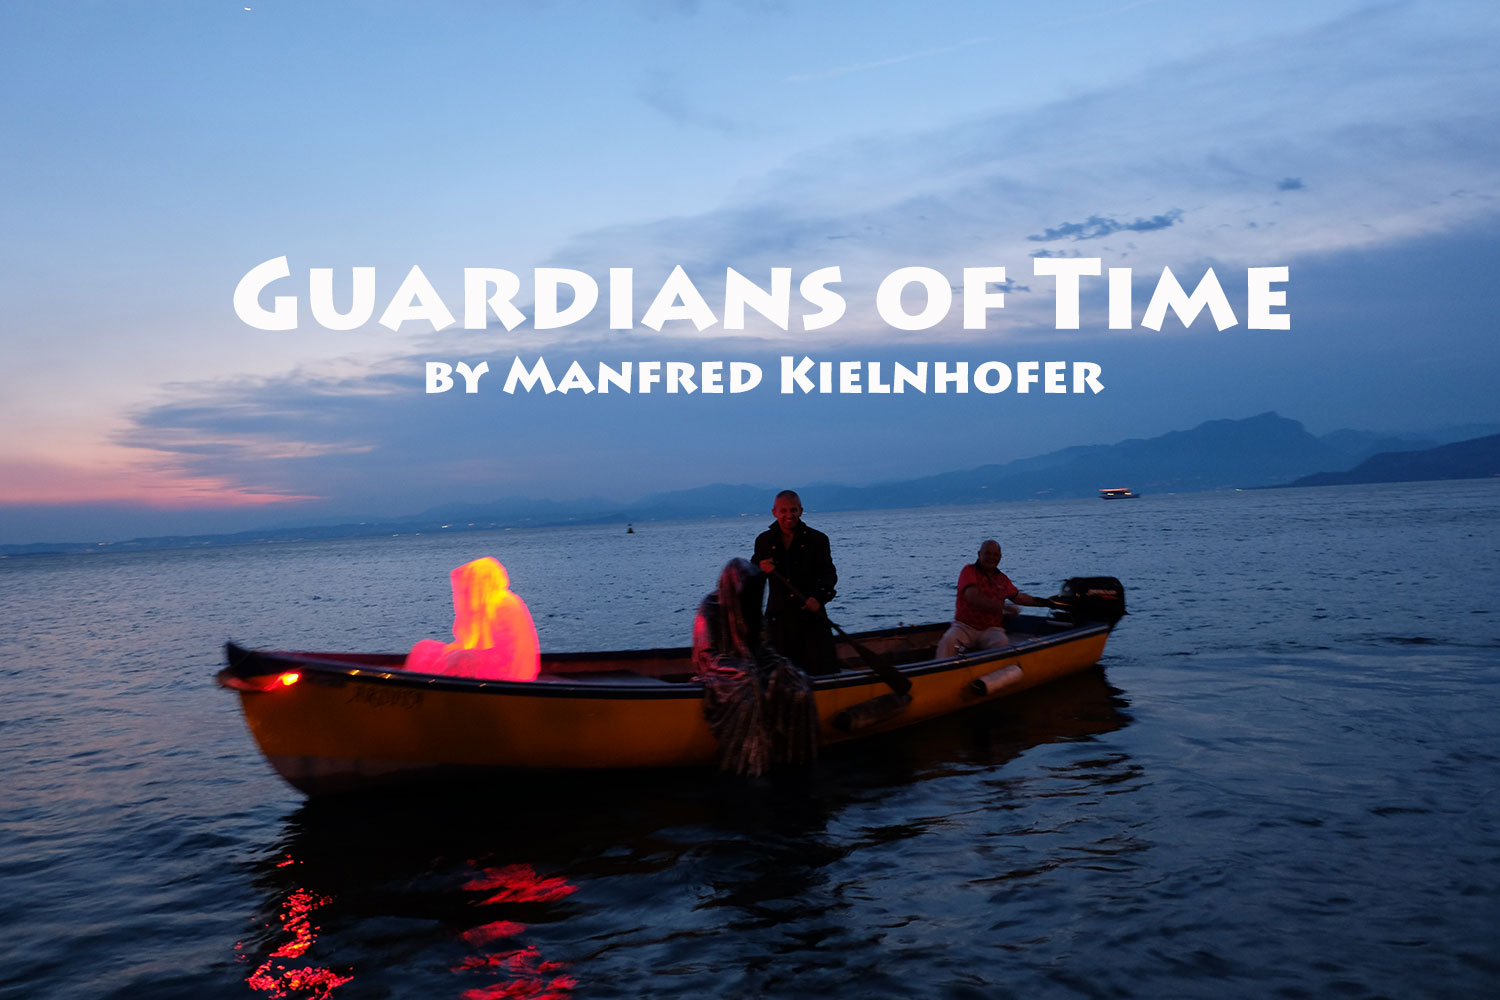 lazise-largo-de-guarda-italia--kouba-designkooperative-austria-guardians-of-time-manfred-kili-kielnhofer-contemporary-art-design-arts-arte-sculpture-theater-foto-film-performnce-avalon-ferryman-3837-